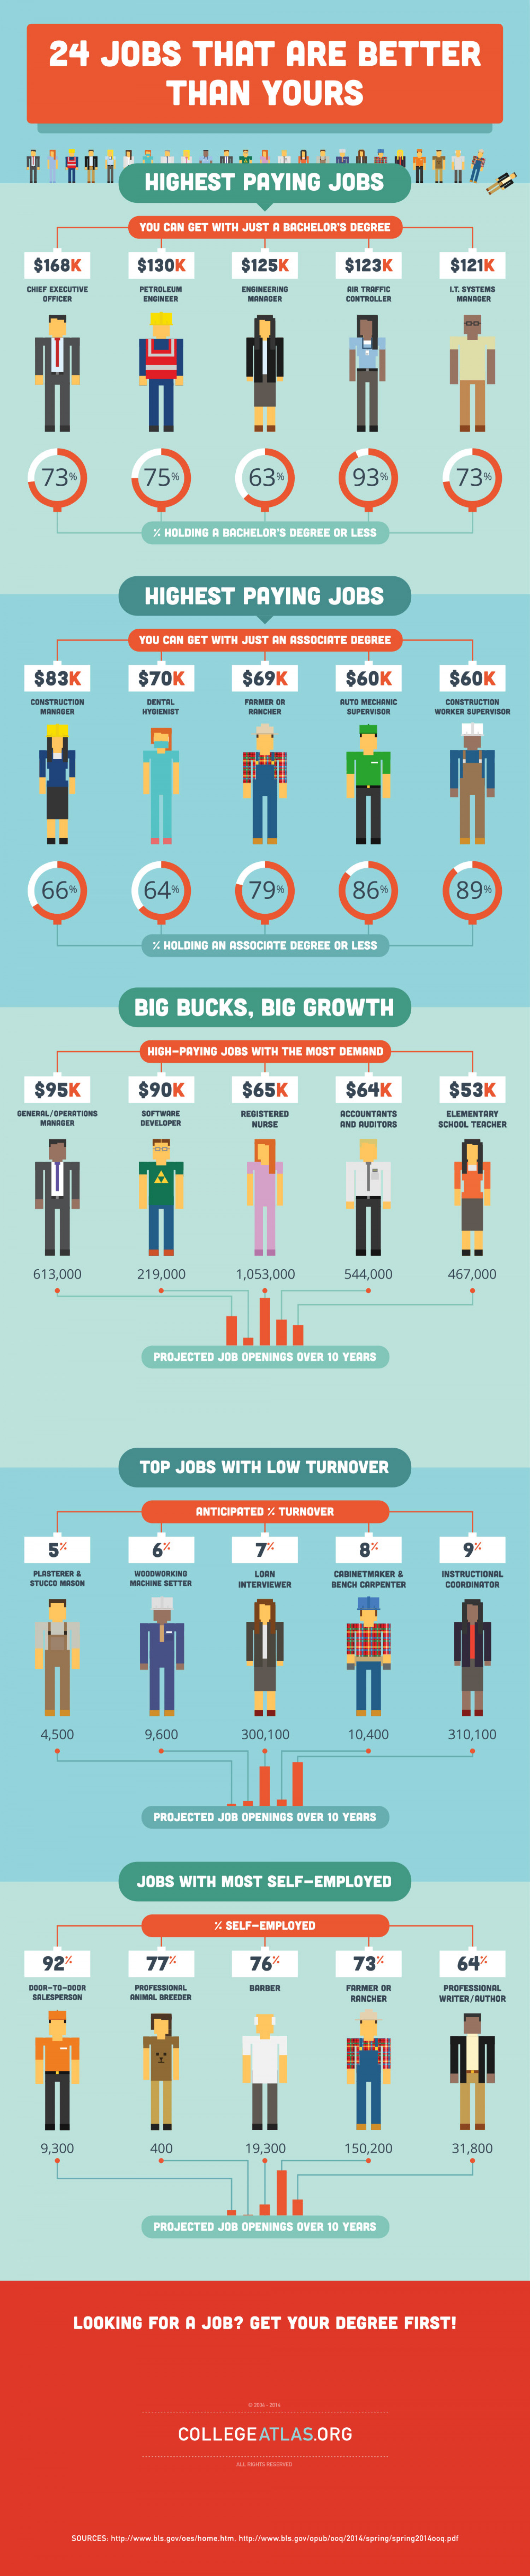 24 Jobs That Are Better Than Yours Infographic